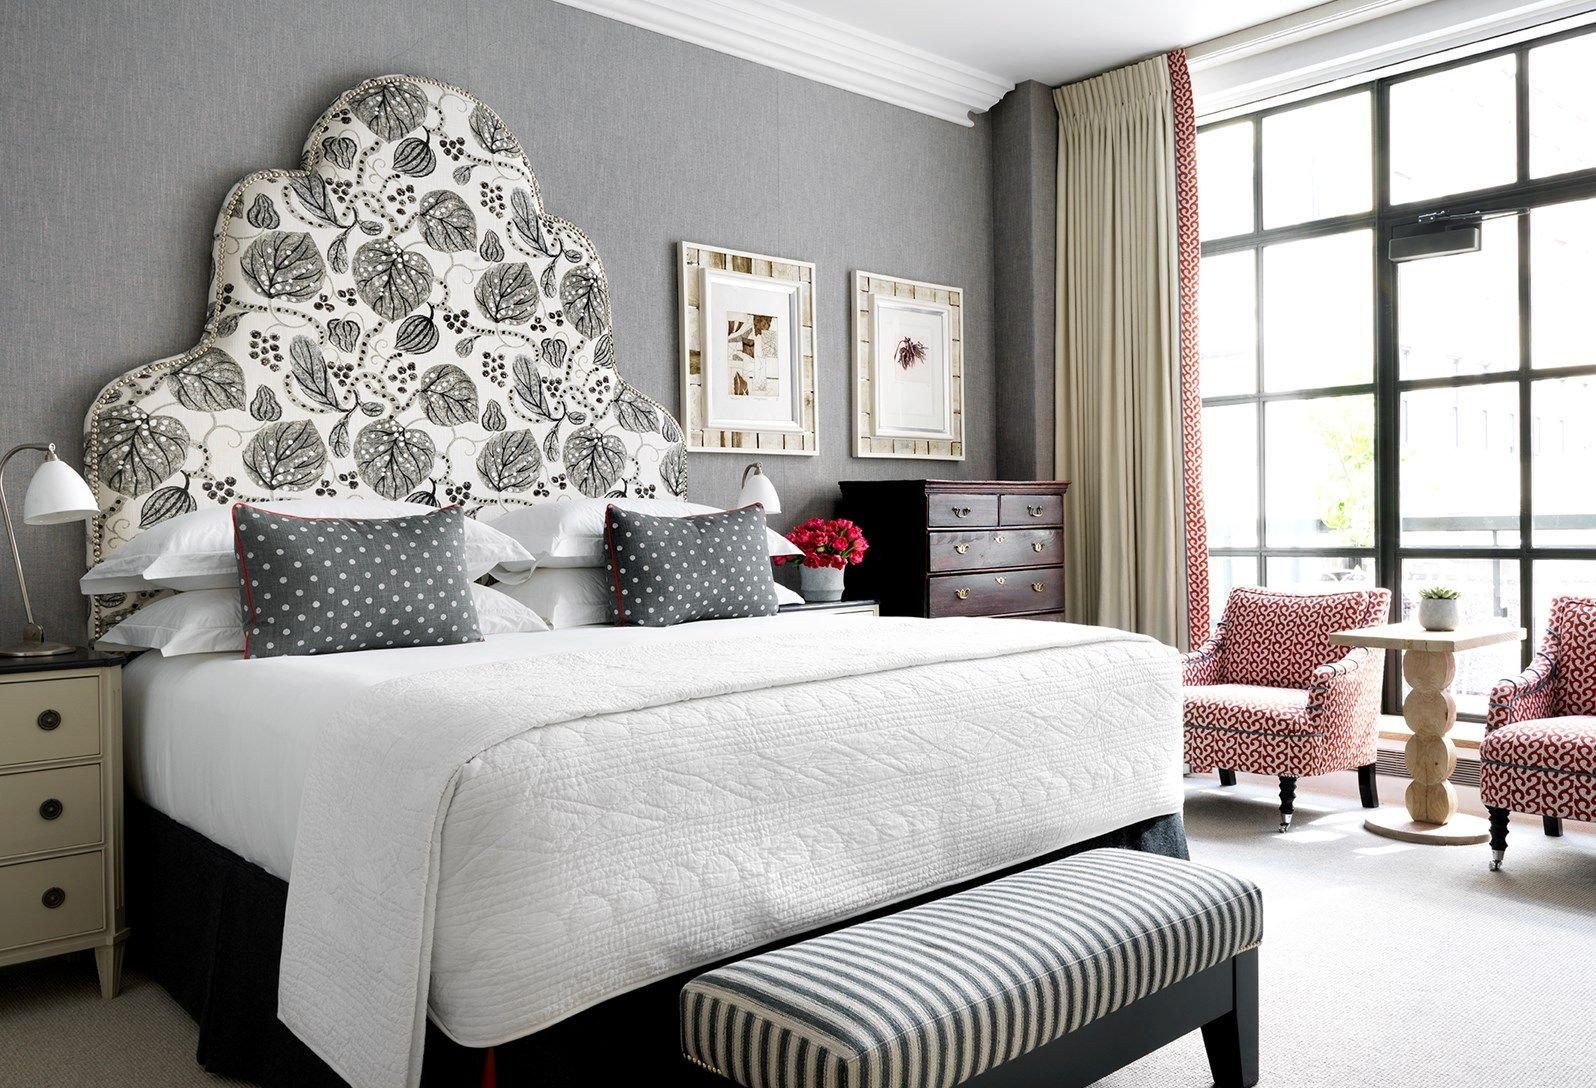 Grey and Red Bedroom Beautiful A Bedroom In Grey tones with Red Details In Two Armchairs In